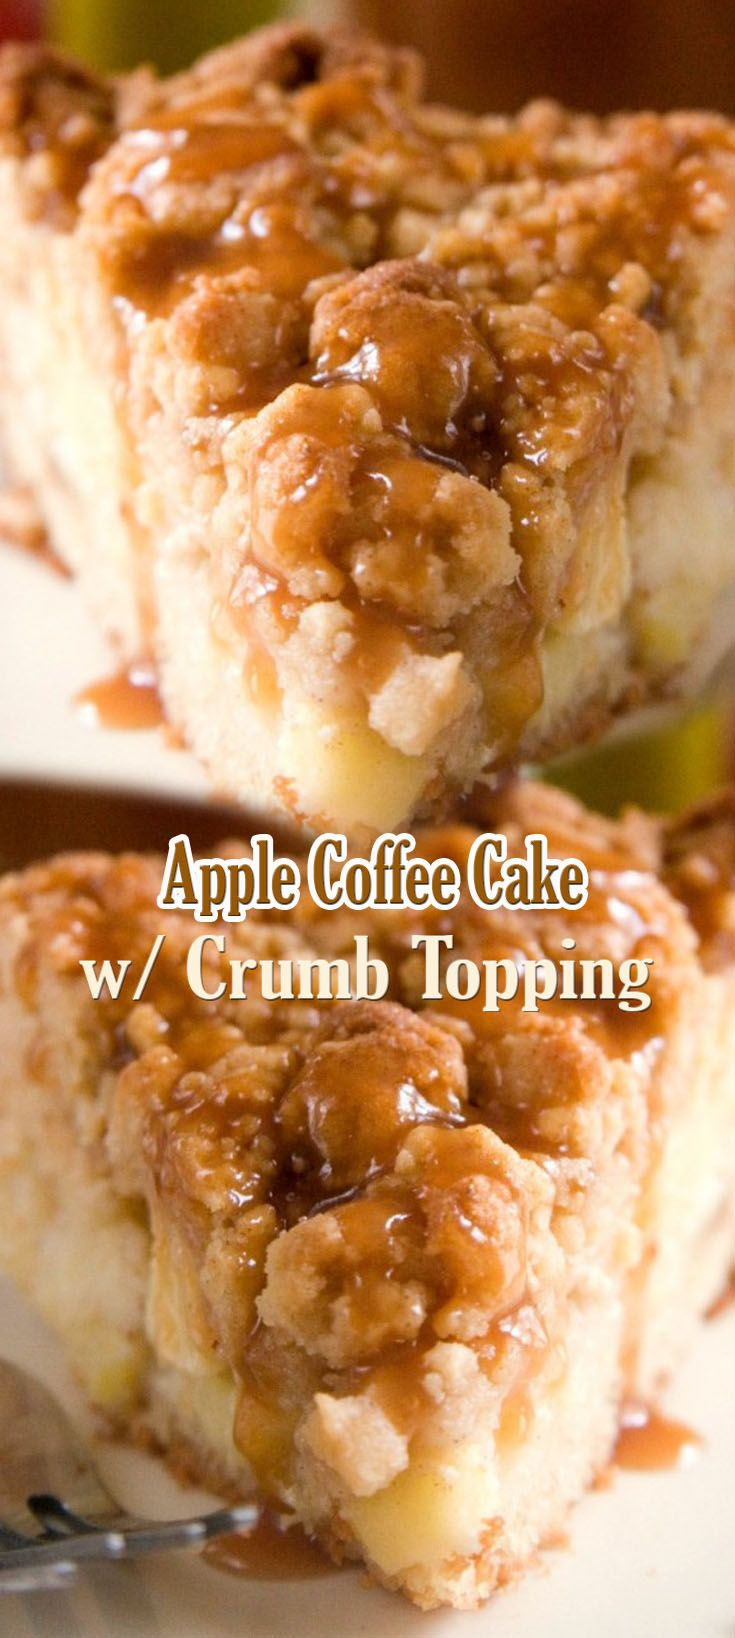 Apple Coffee Cake with Crumb Topping